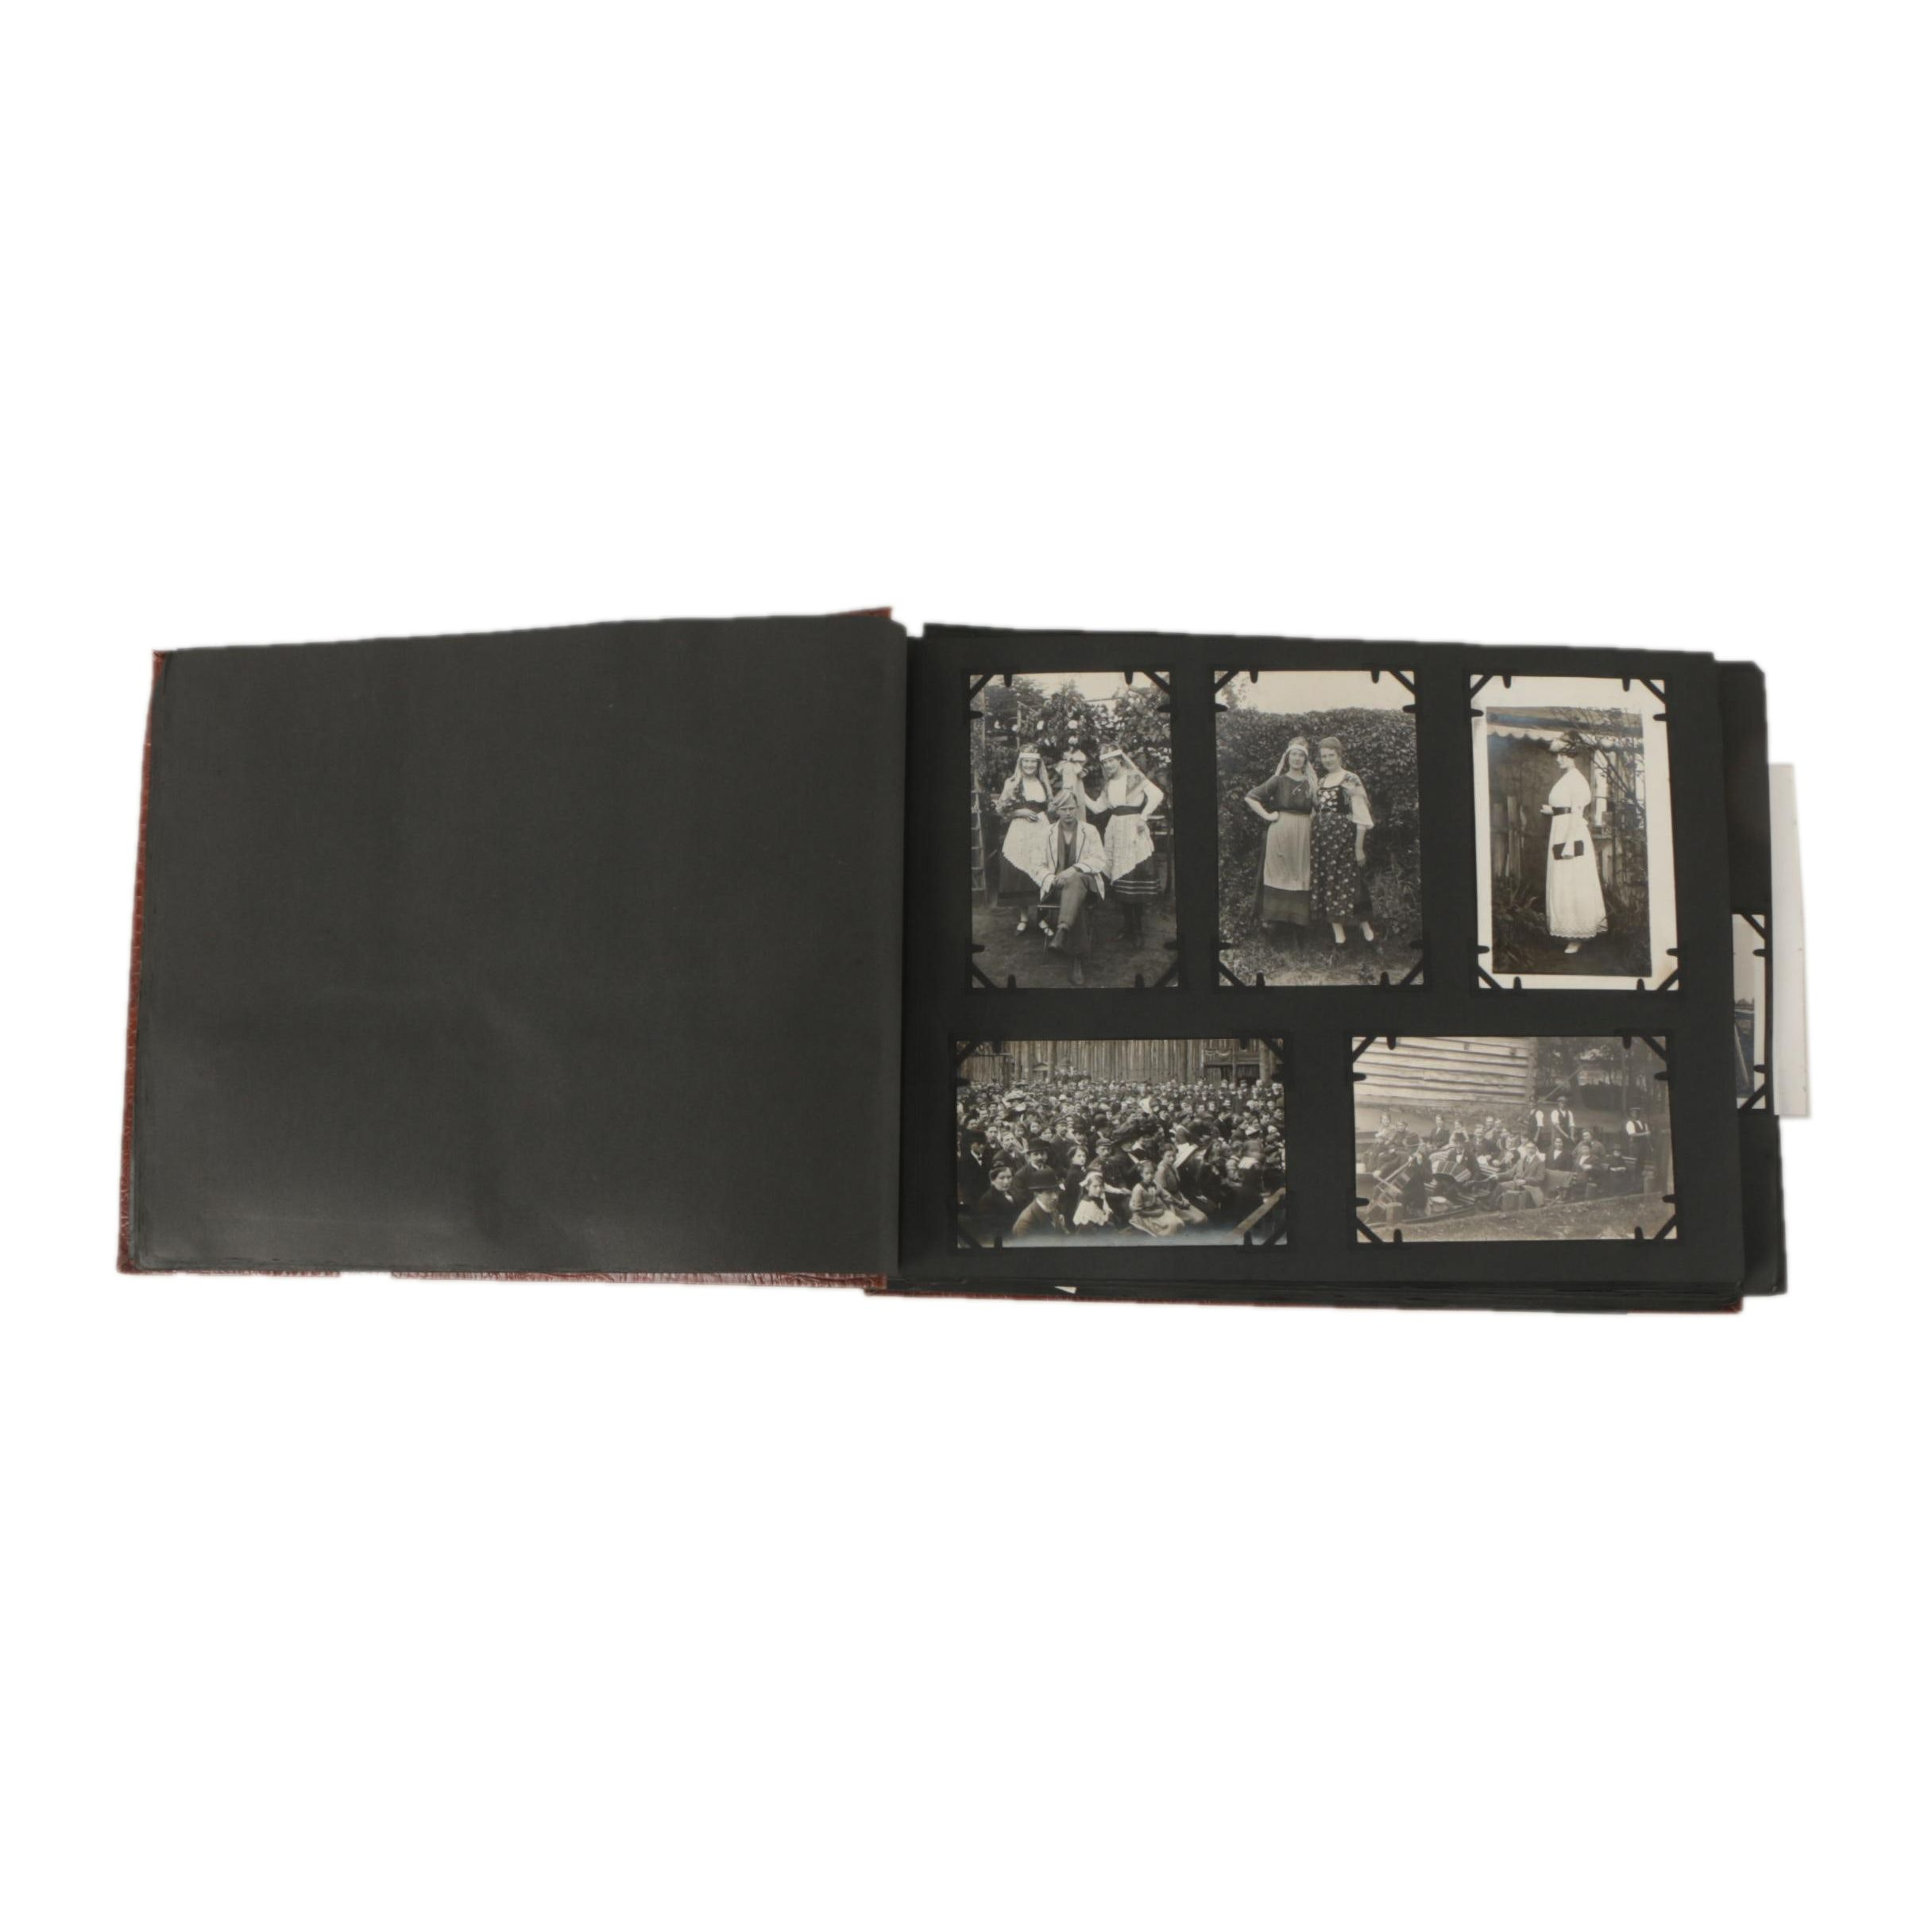 Vintage Black and White Photographs in Leather Folio